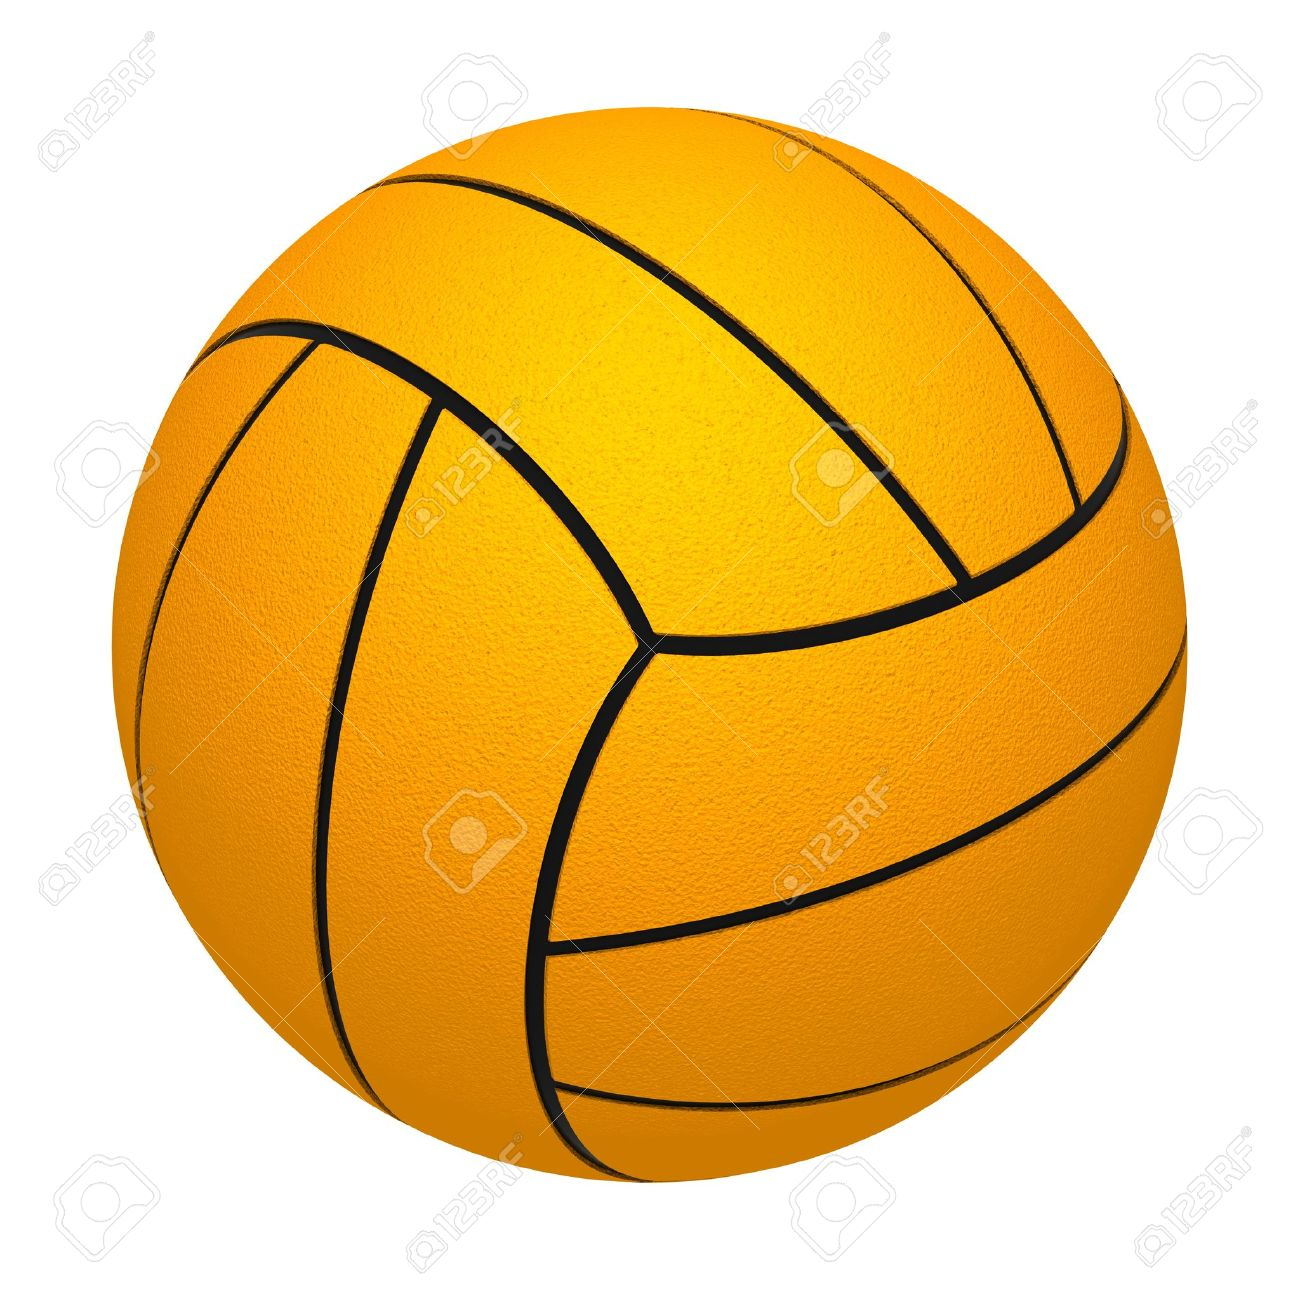 Water Polo Ball Stock Photo - 9410489